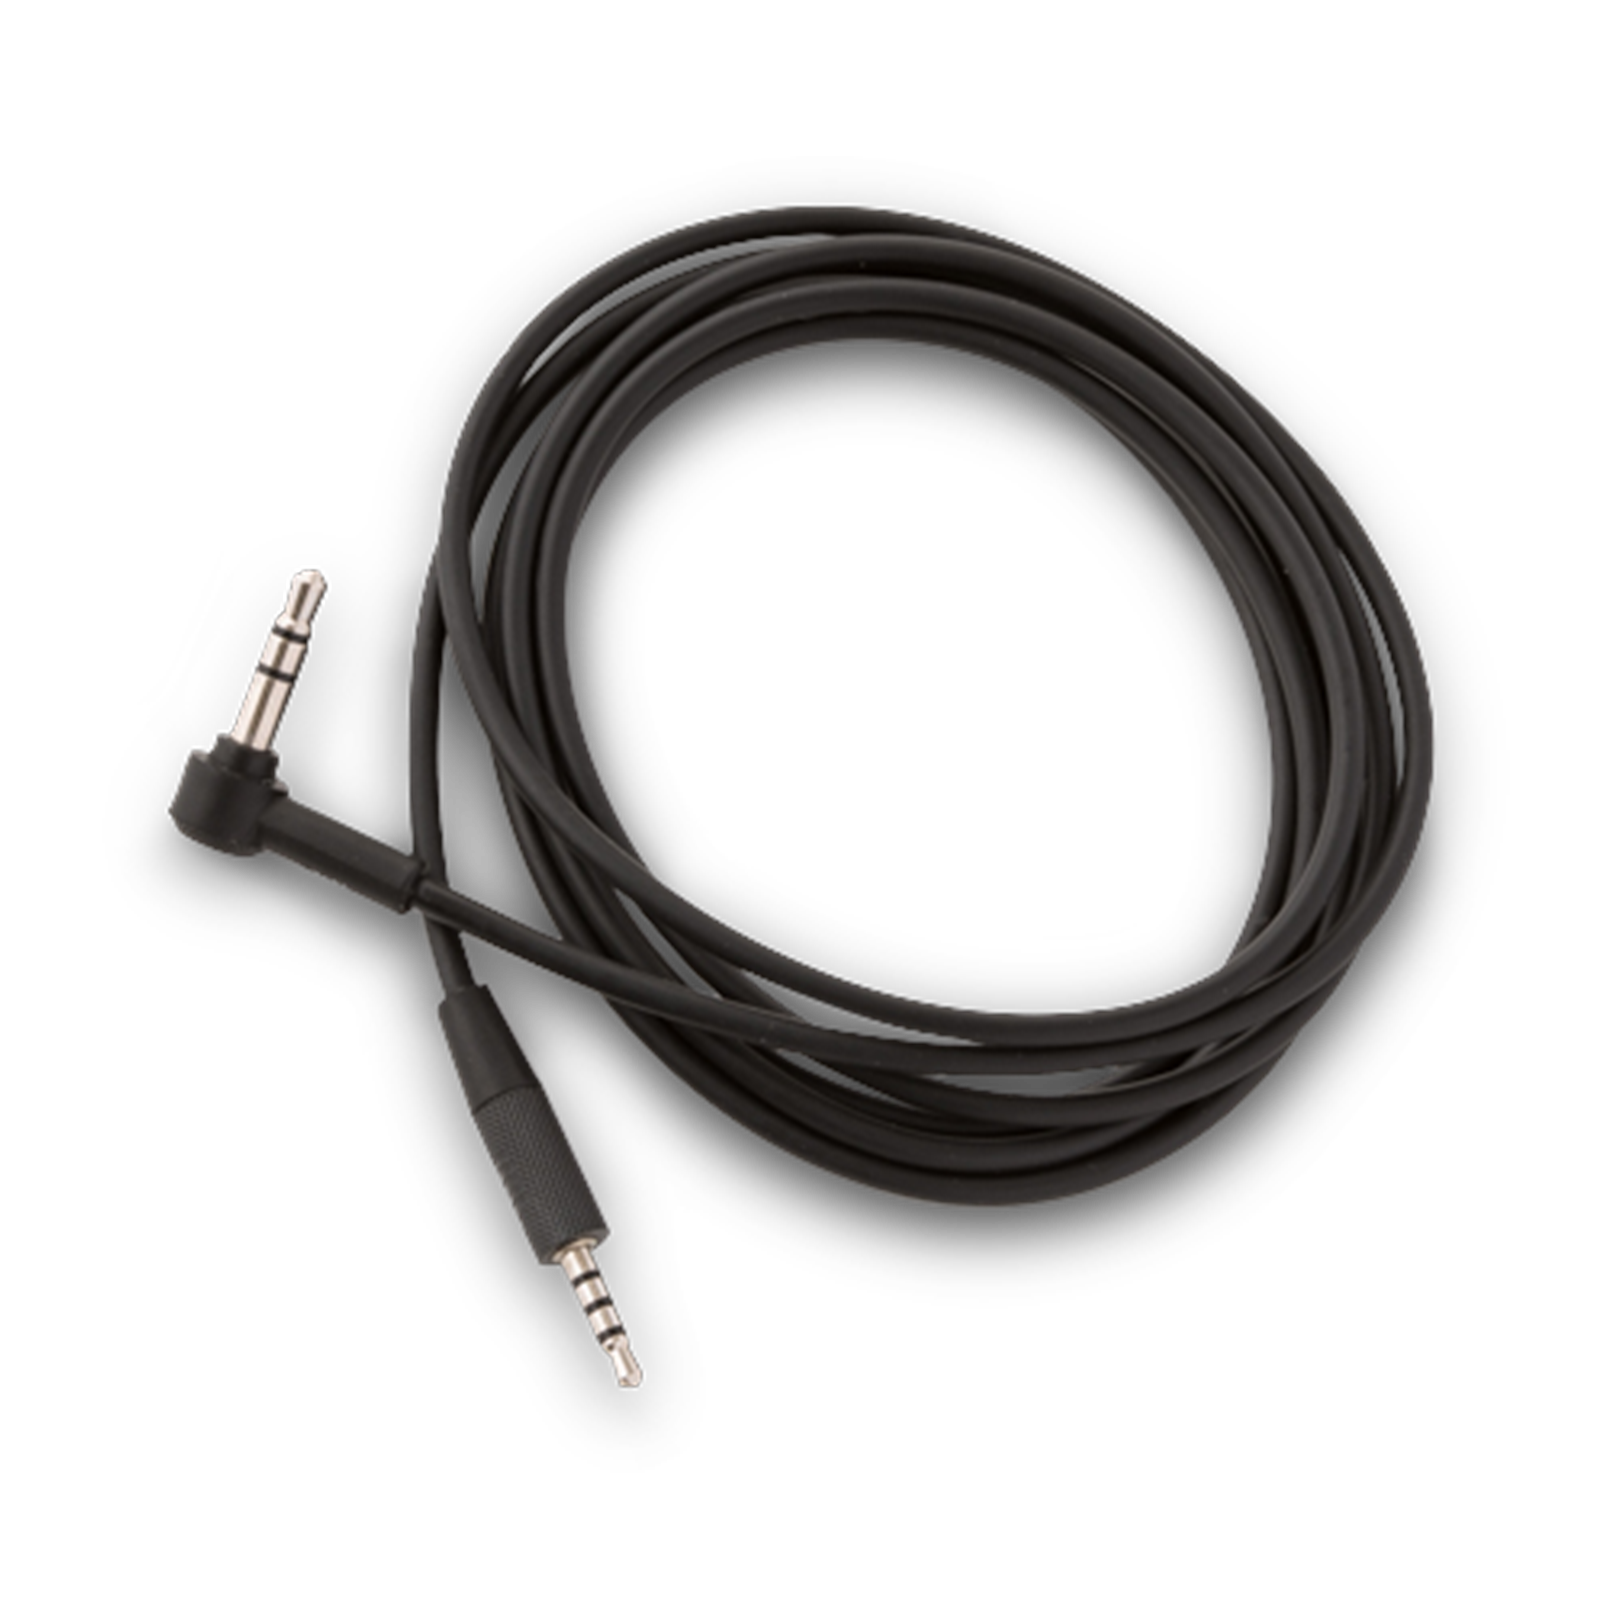 JBL Audio cable for E50BT